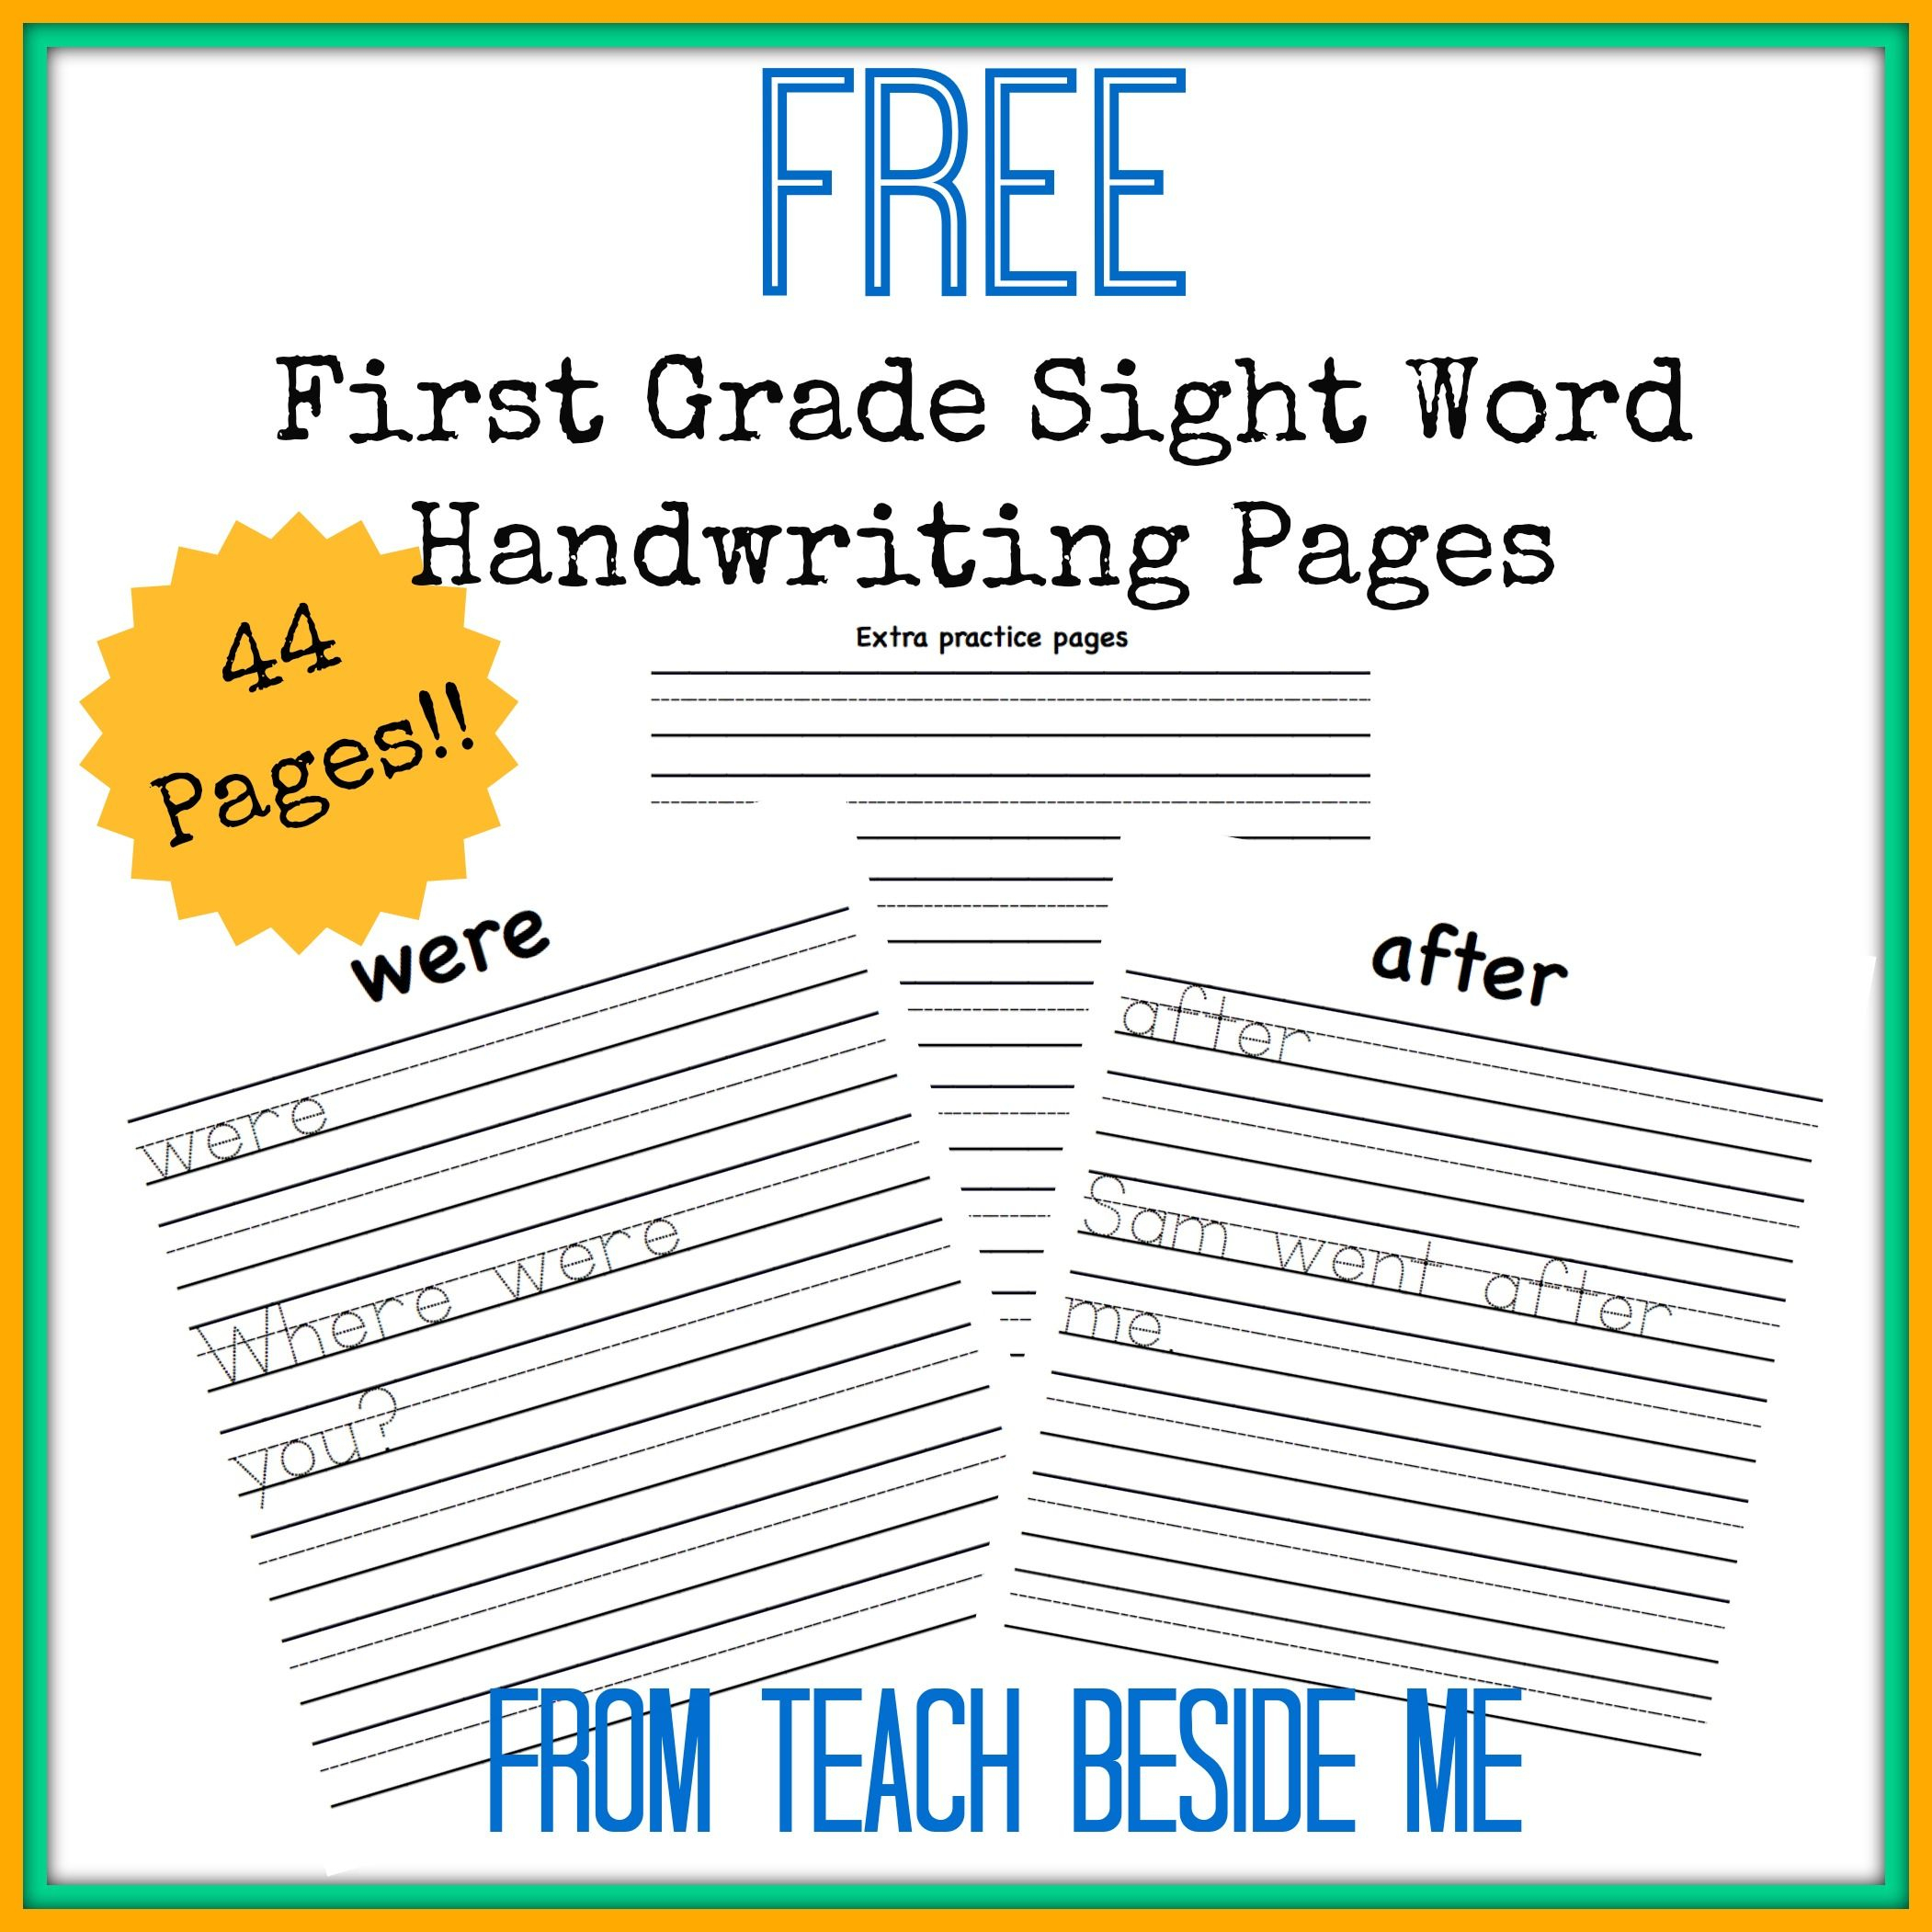 First Grade Dolch Sight Word Handwriting Pages | Ultimate Homeschool | 1St Grade Sight Words Printables Worksheets